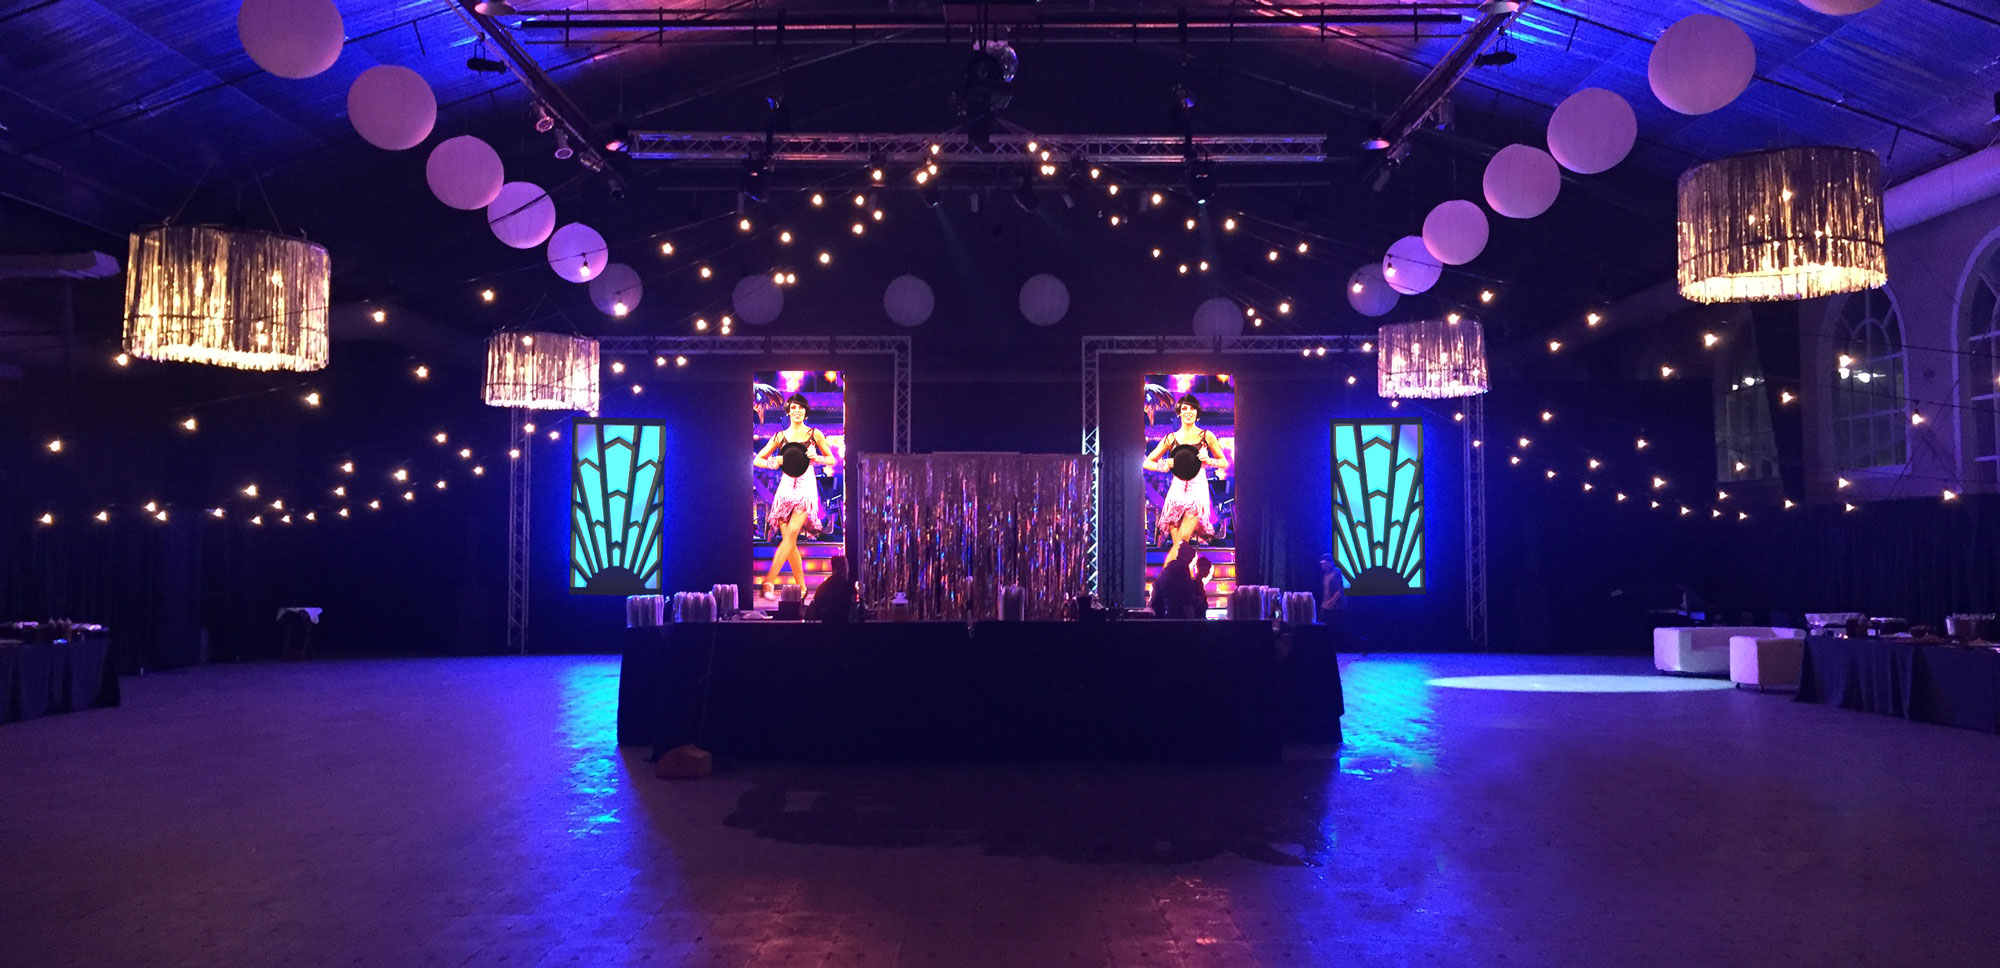 Main Street Arena Twenties Party with LED Wall Columns